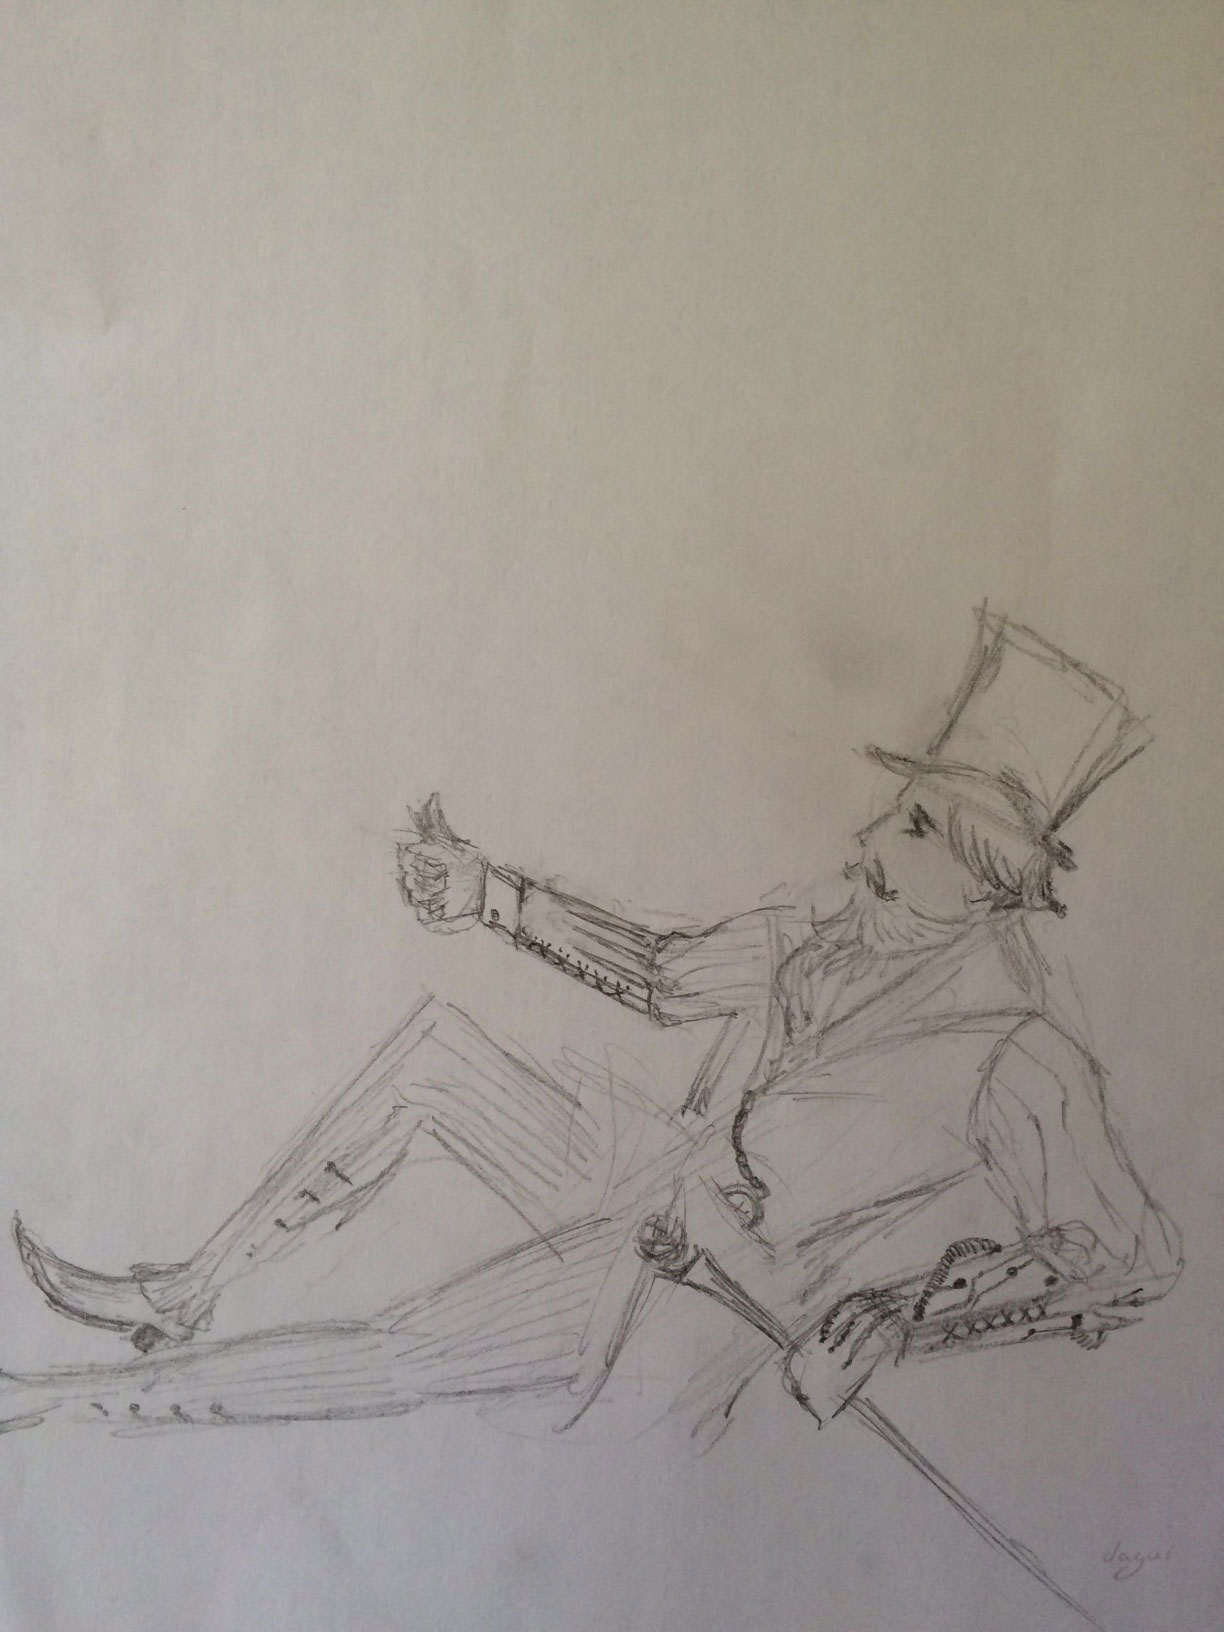 Steampunk Dejeuner In Japan sketch 4